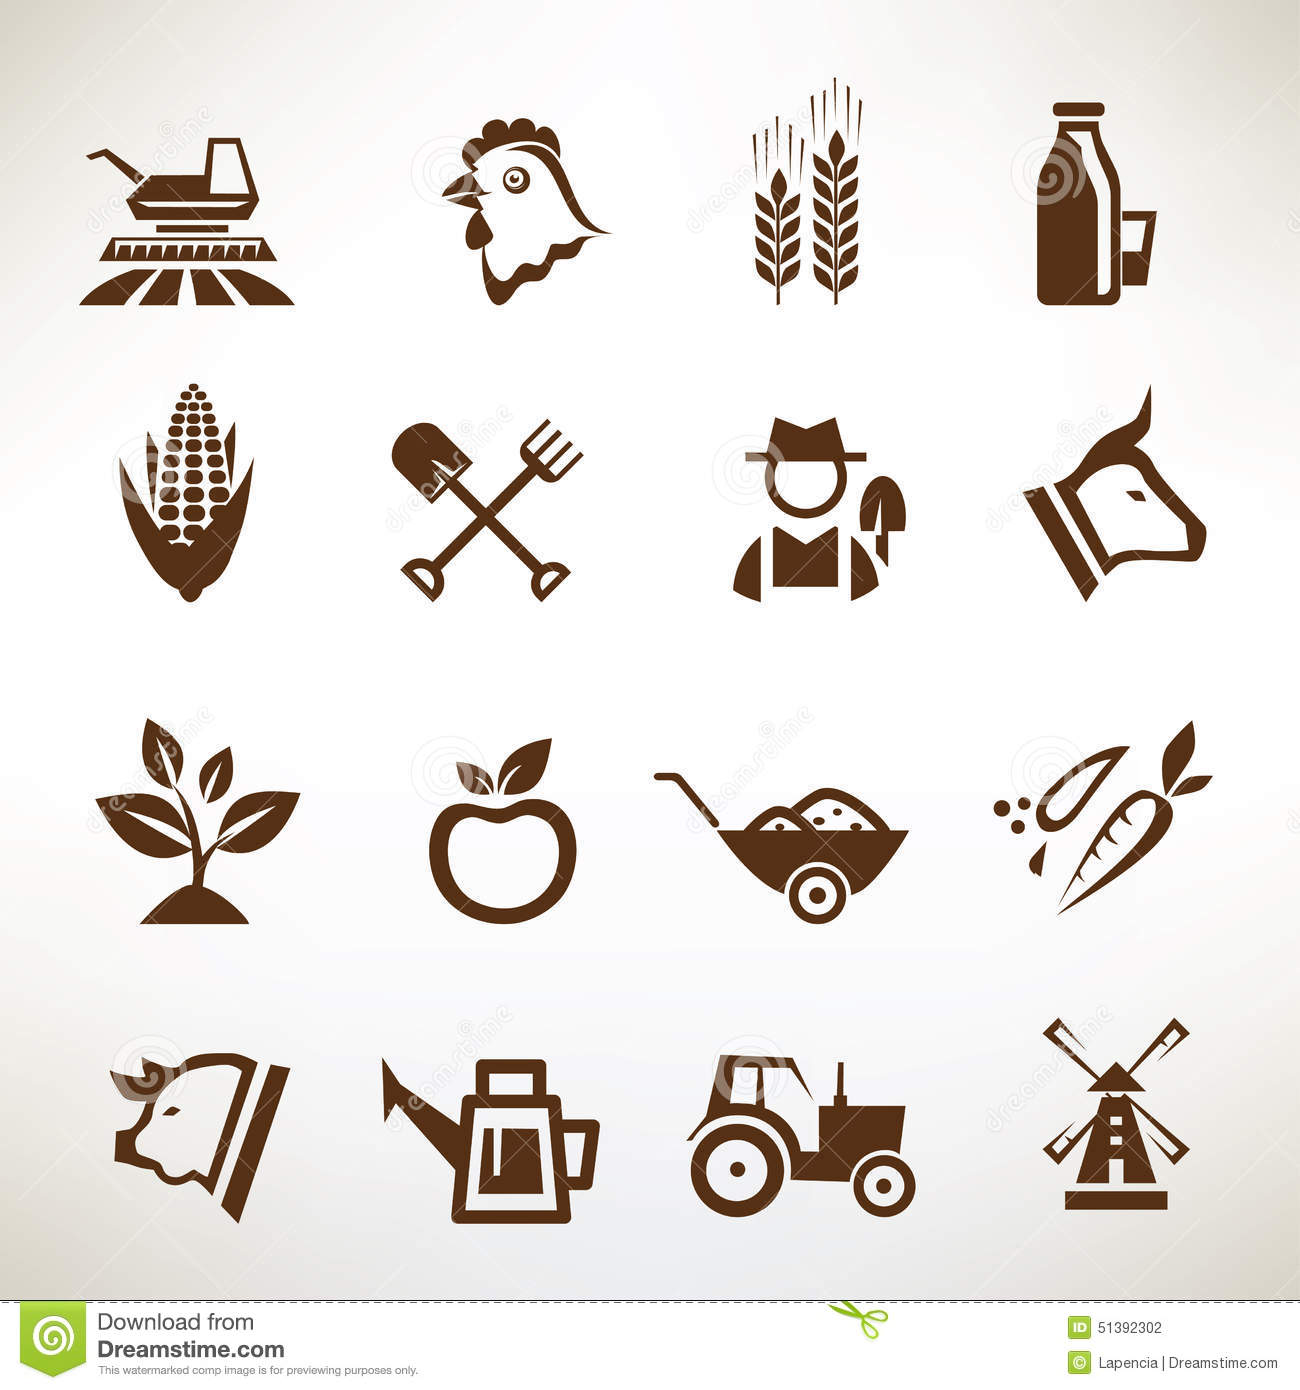 Farm And Agriculture Vector Icons Stock Vector - Image: 51392302